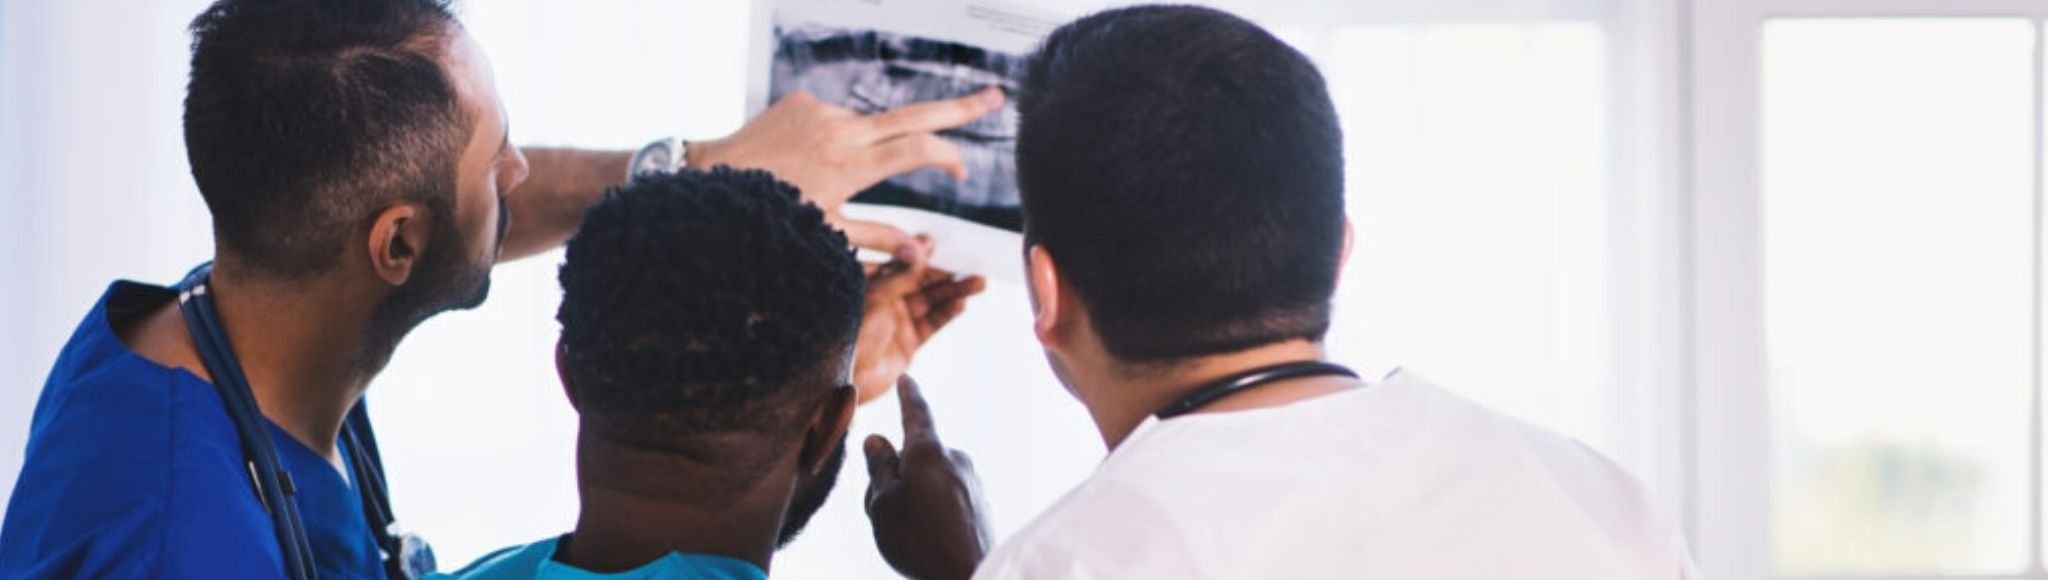 medical staff looking at x-ray